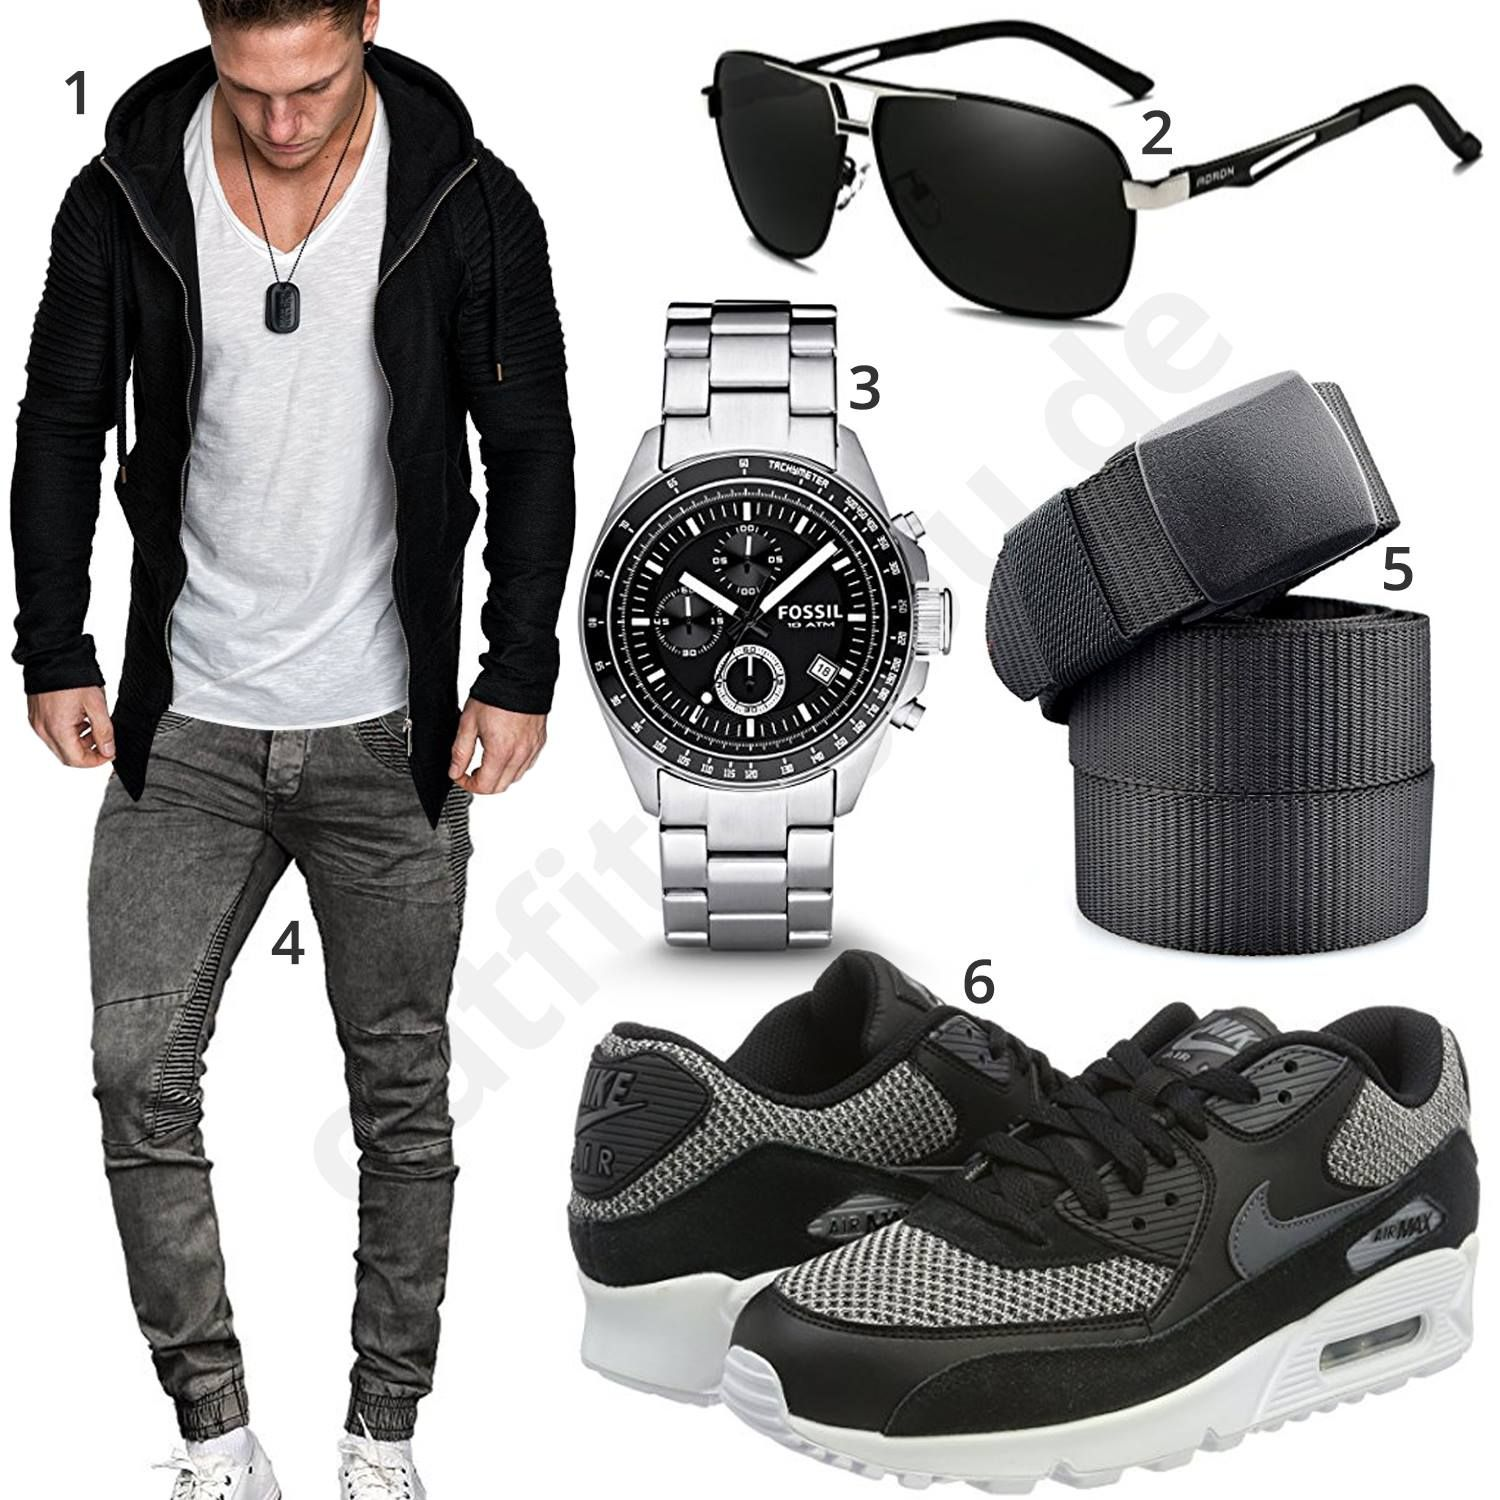 2692a4511a4 Cooler Style mit Nike